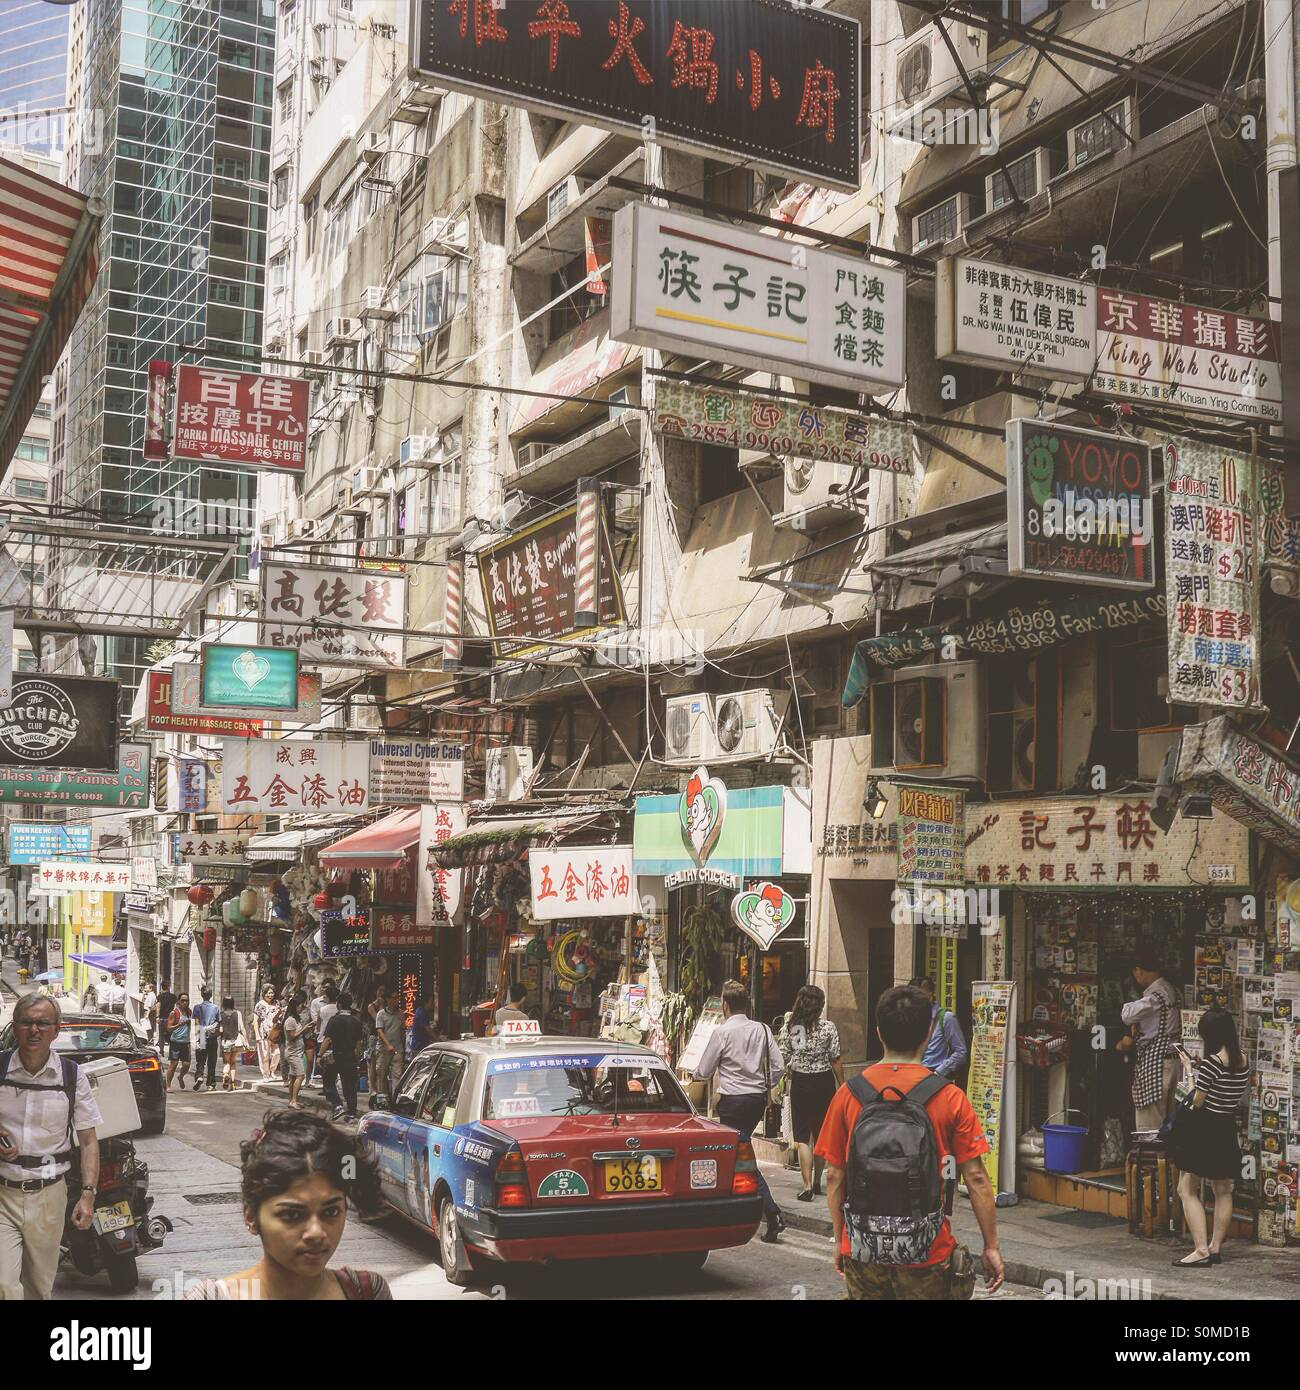 A busy street in downtown Hong Kong - Stock Image